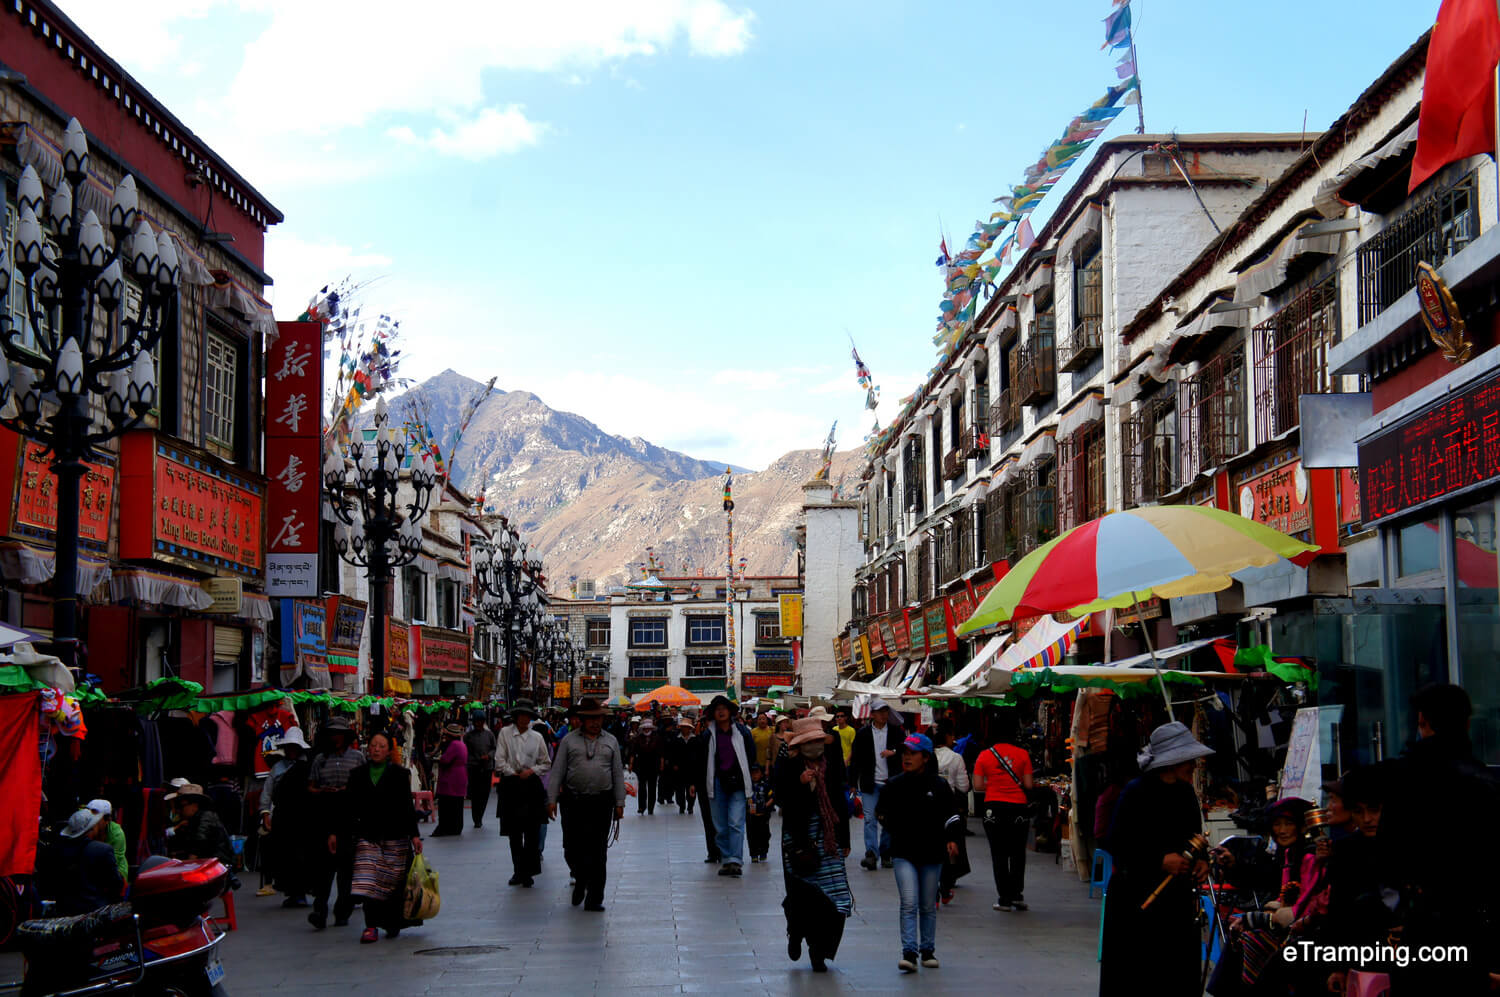 The streets of Lhasa, Tibet